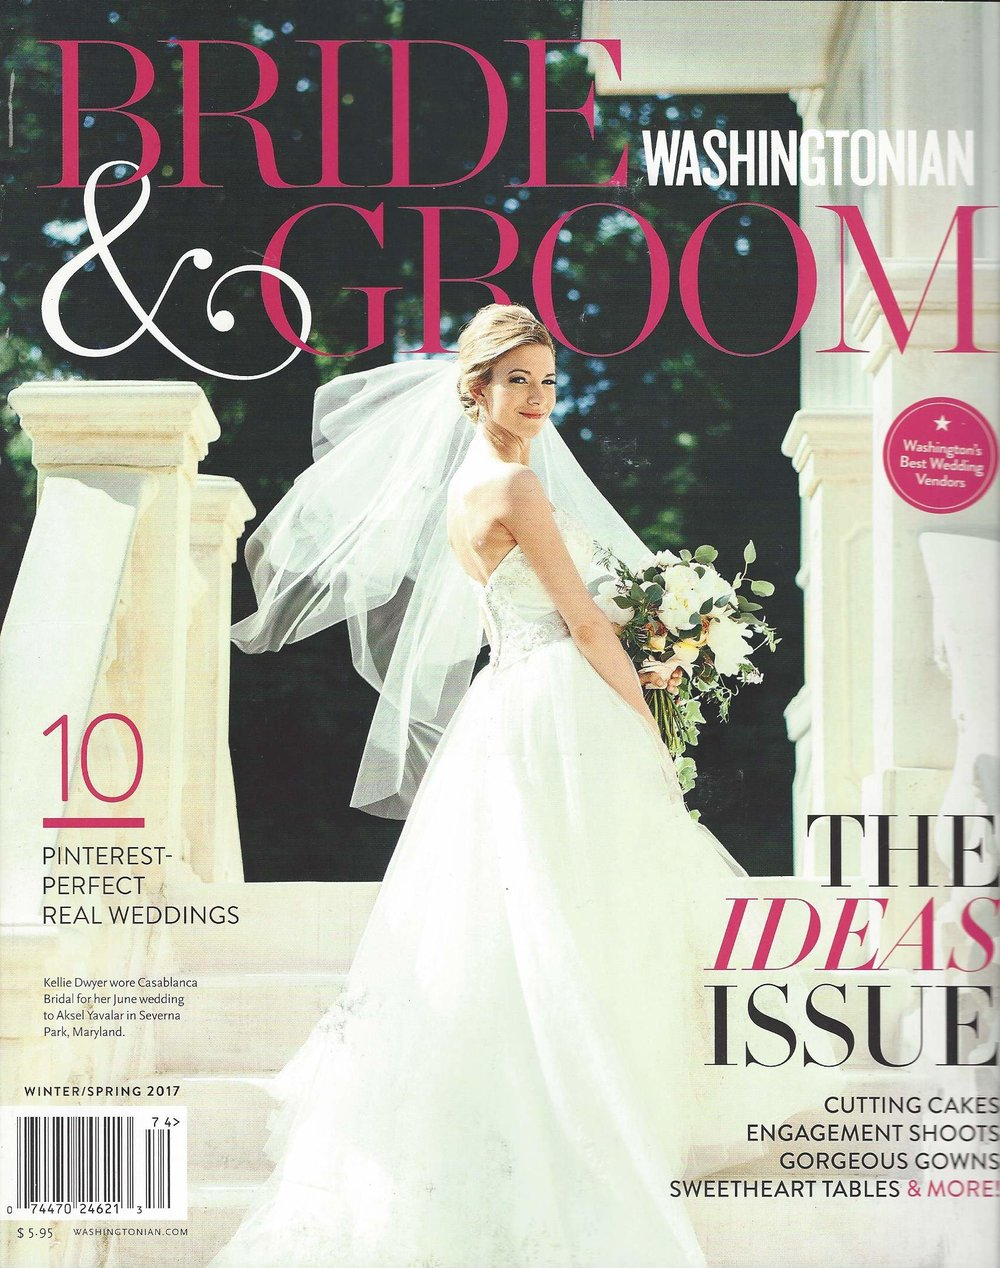 washingtonian-bridegroom-winterspring-2017